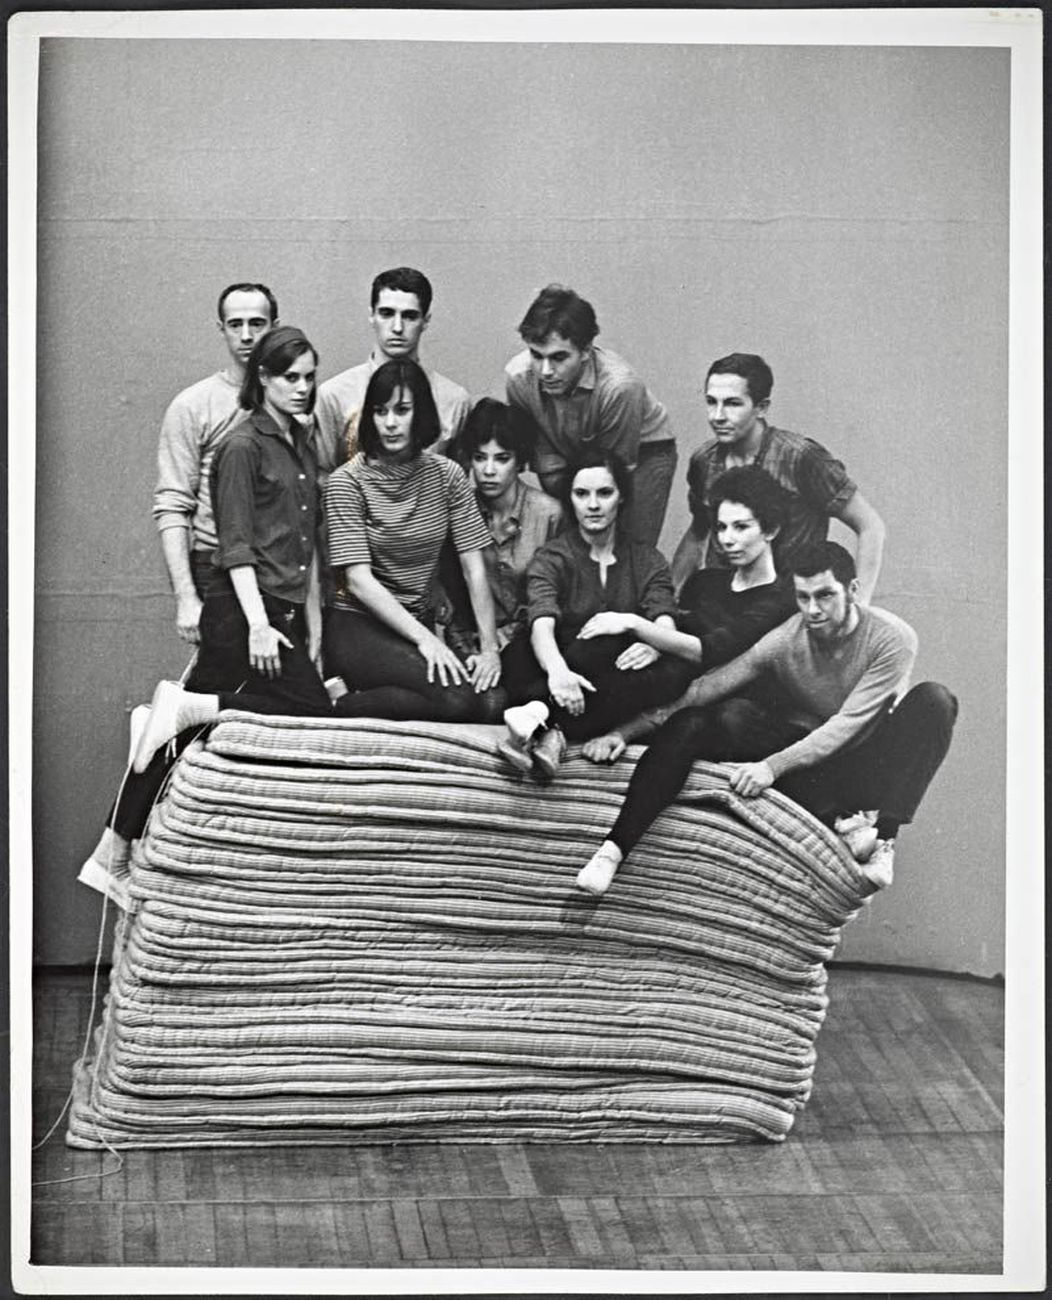 Peter Moore, Untitled (The cast of Yvonne Rainer's Part of Some Sextets, 1965). Courtesy of Barbara Moore e Paula Cooper Gallery